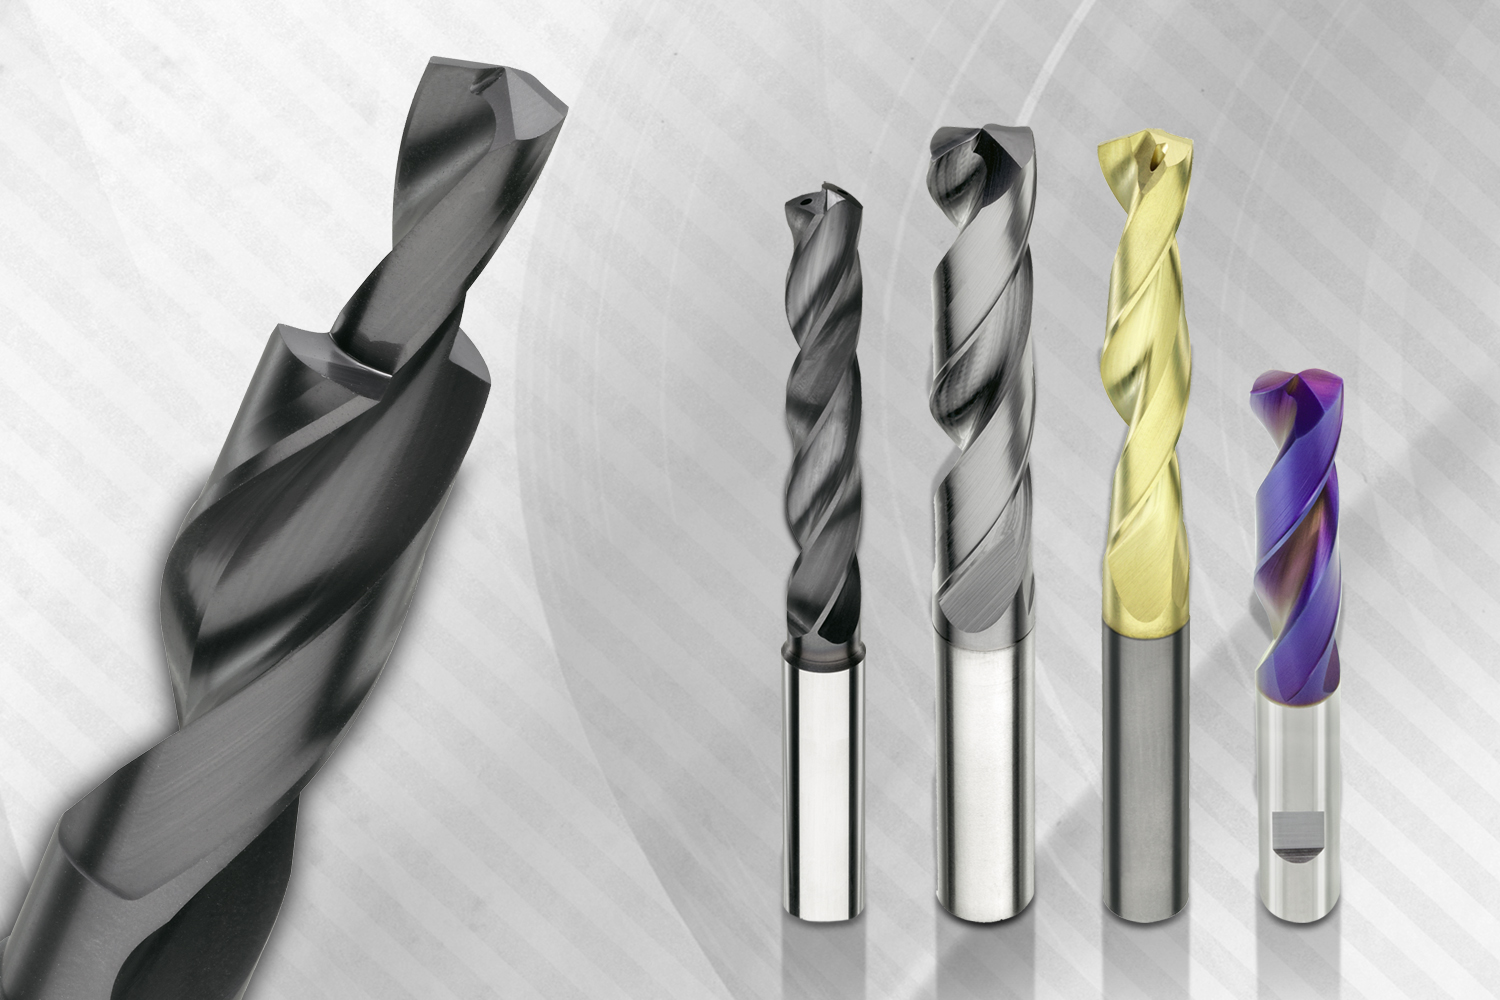 Solid carbide drills